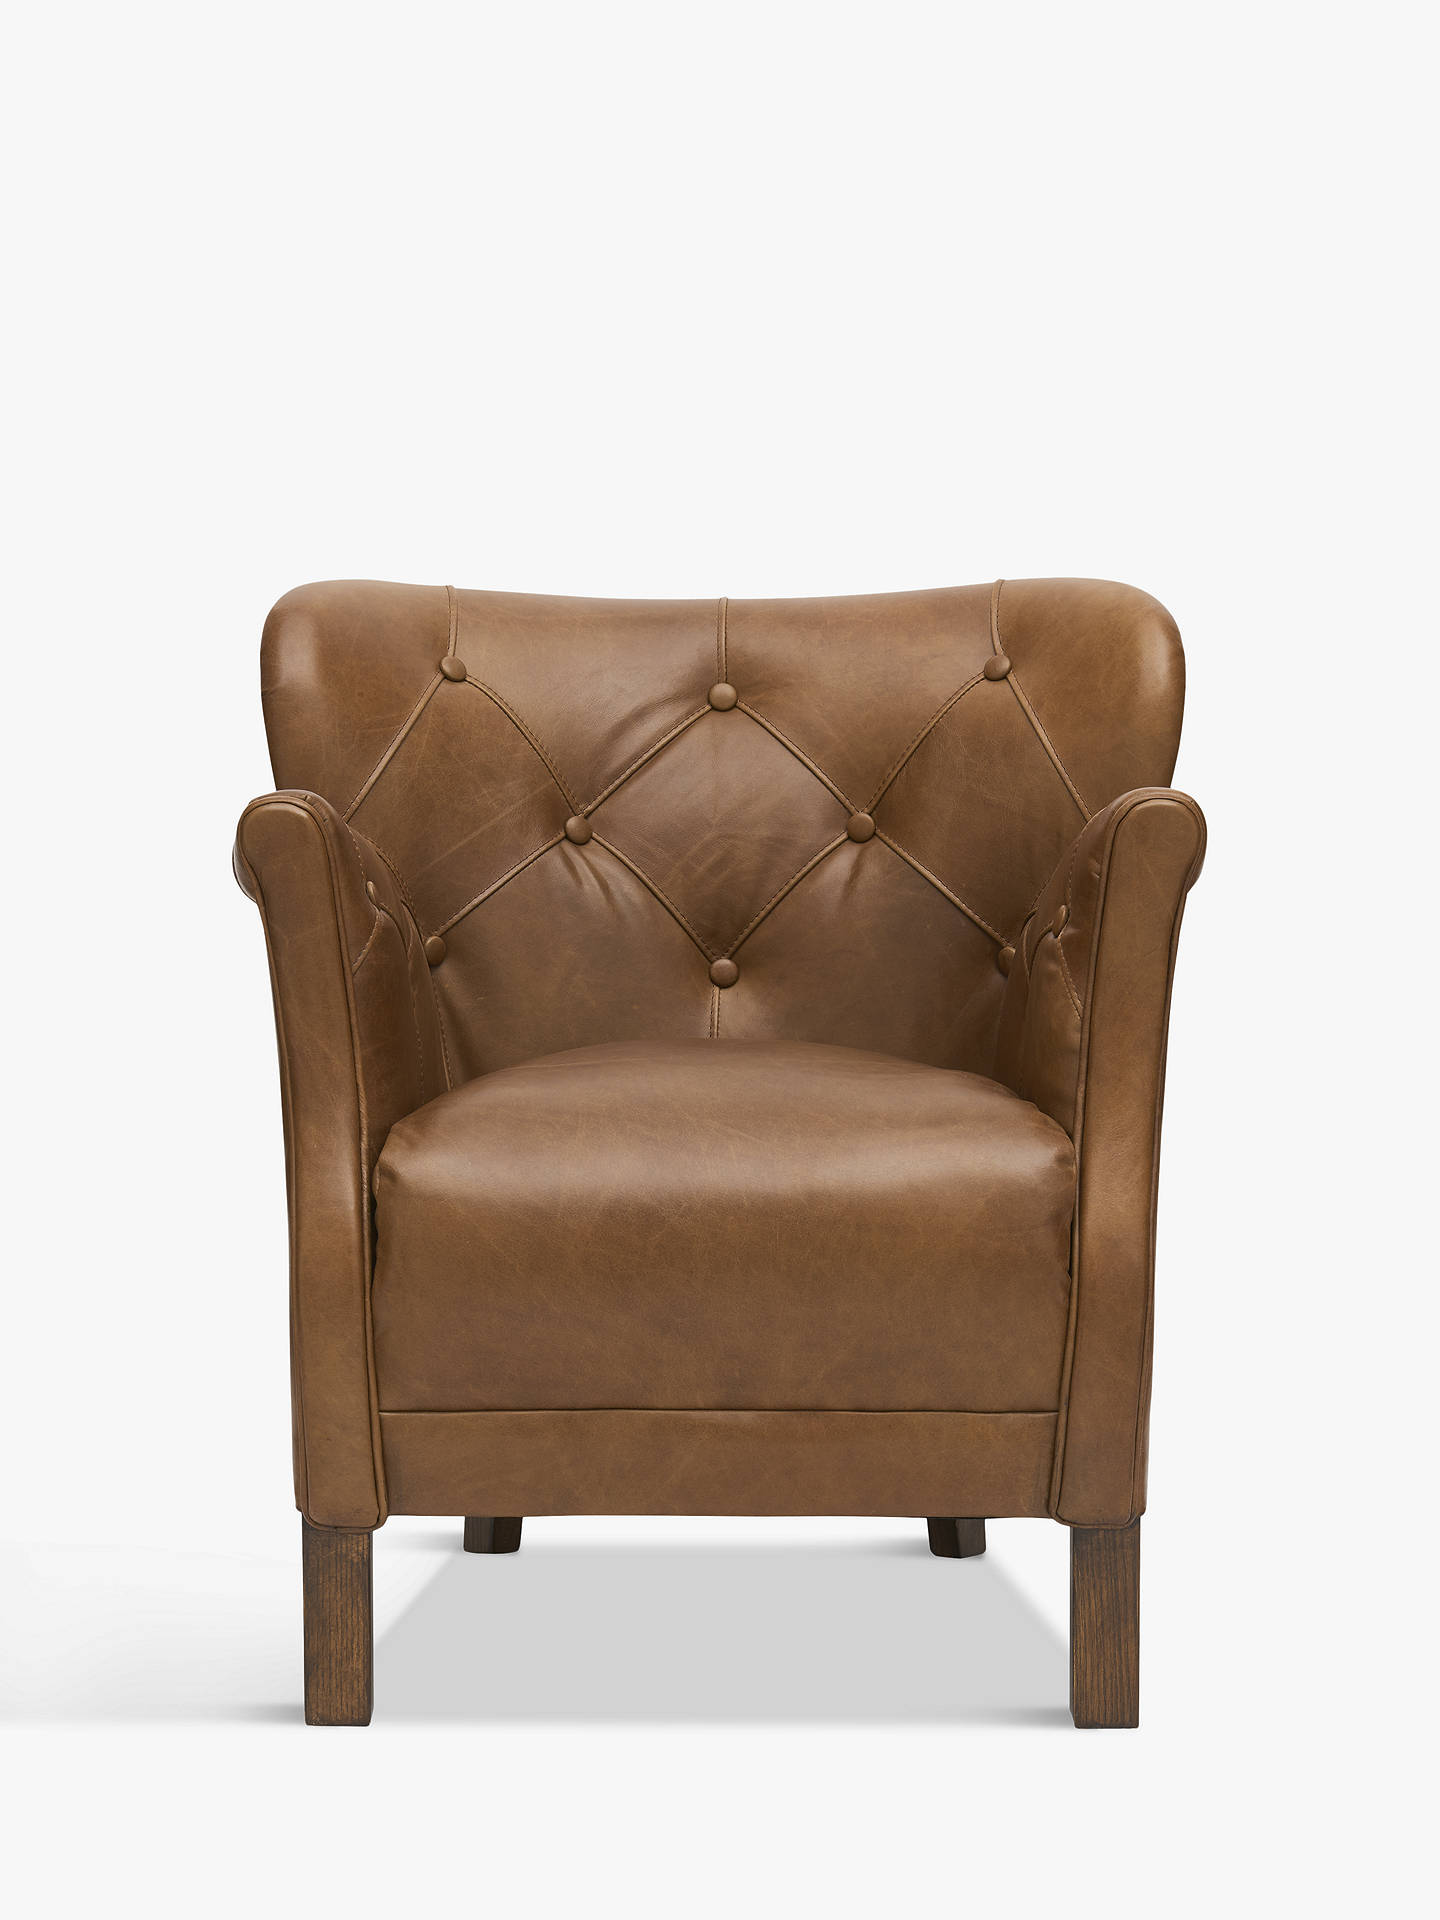 Halo Little Professor Oned Leather Chair Riders Nut At Johnlewis Com